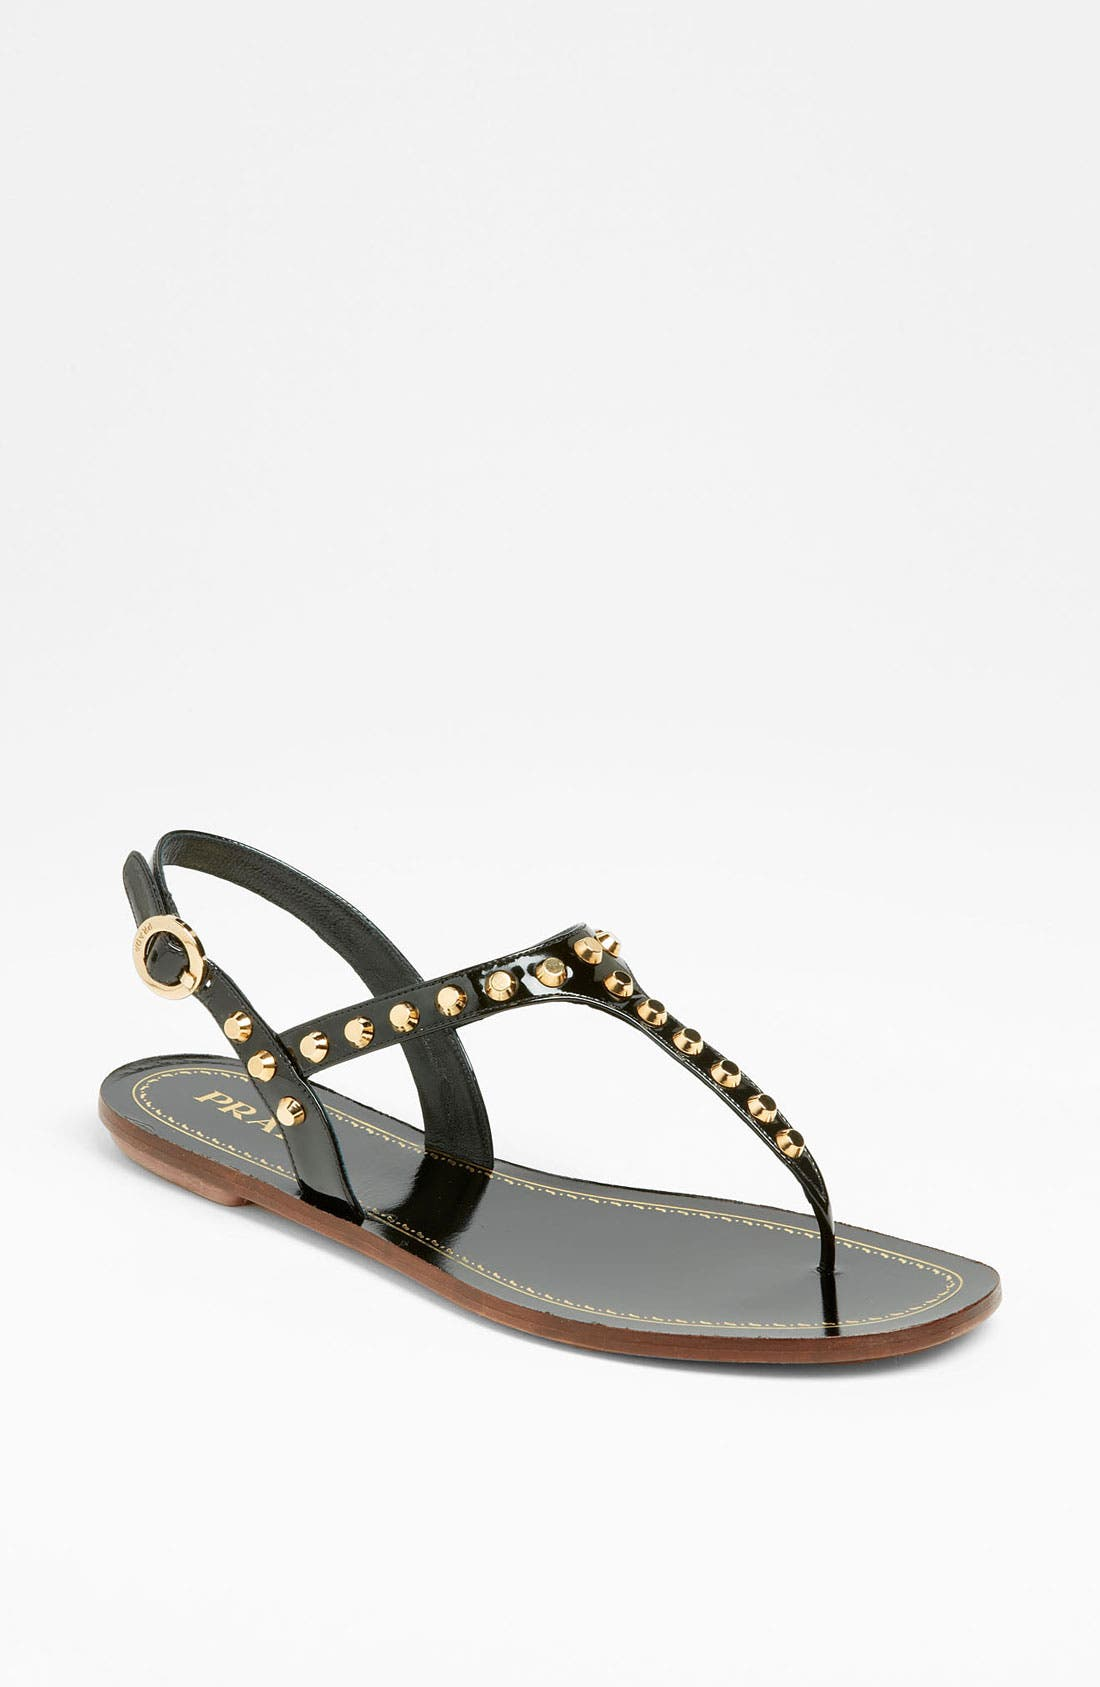 Alternate Image 1 Selected - Prada Studded Thong Sandal